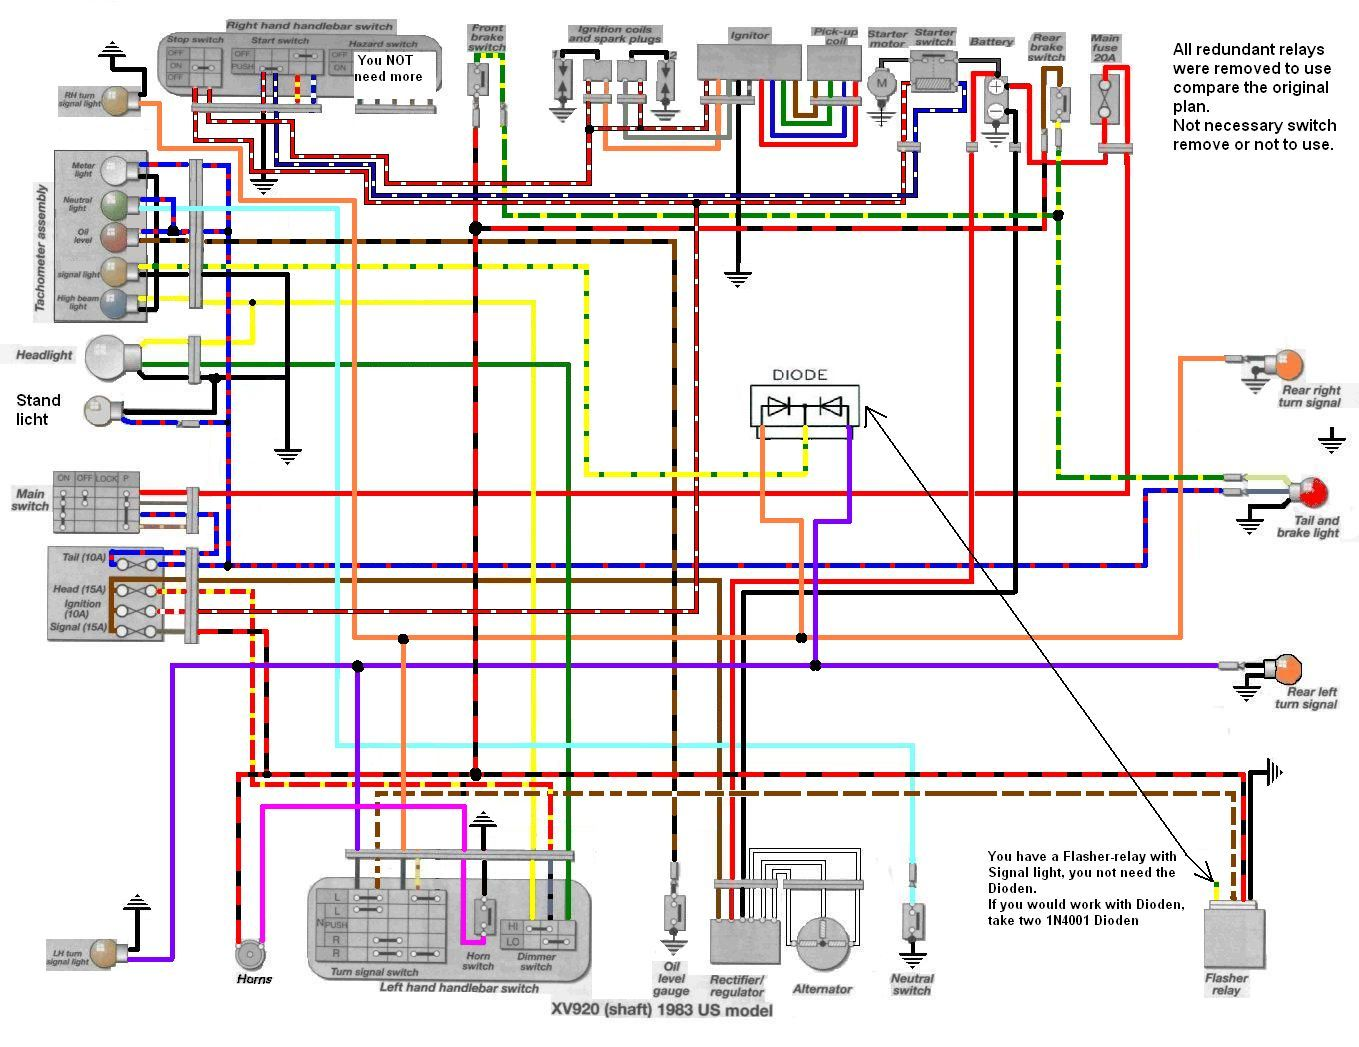 Miraculous Tr1 Xv1000 Xv920 Wiring Diagrams Manfreds Tr1 Page All About Wiring Cloud Xempagosophoxytasticioscodnessplanboapumohammedshrineorg